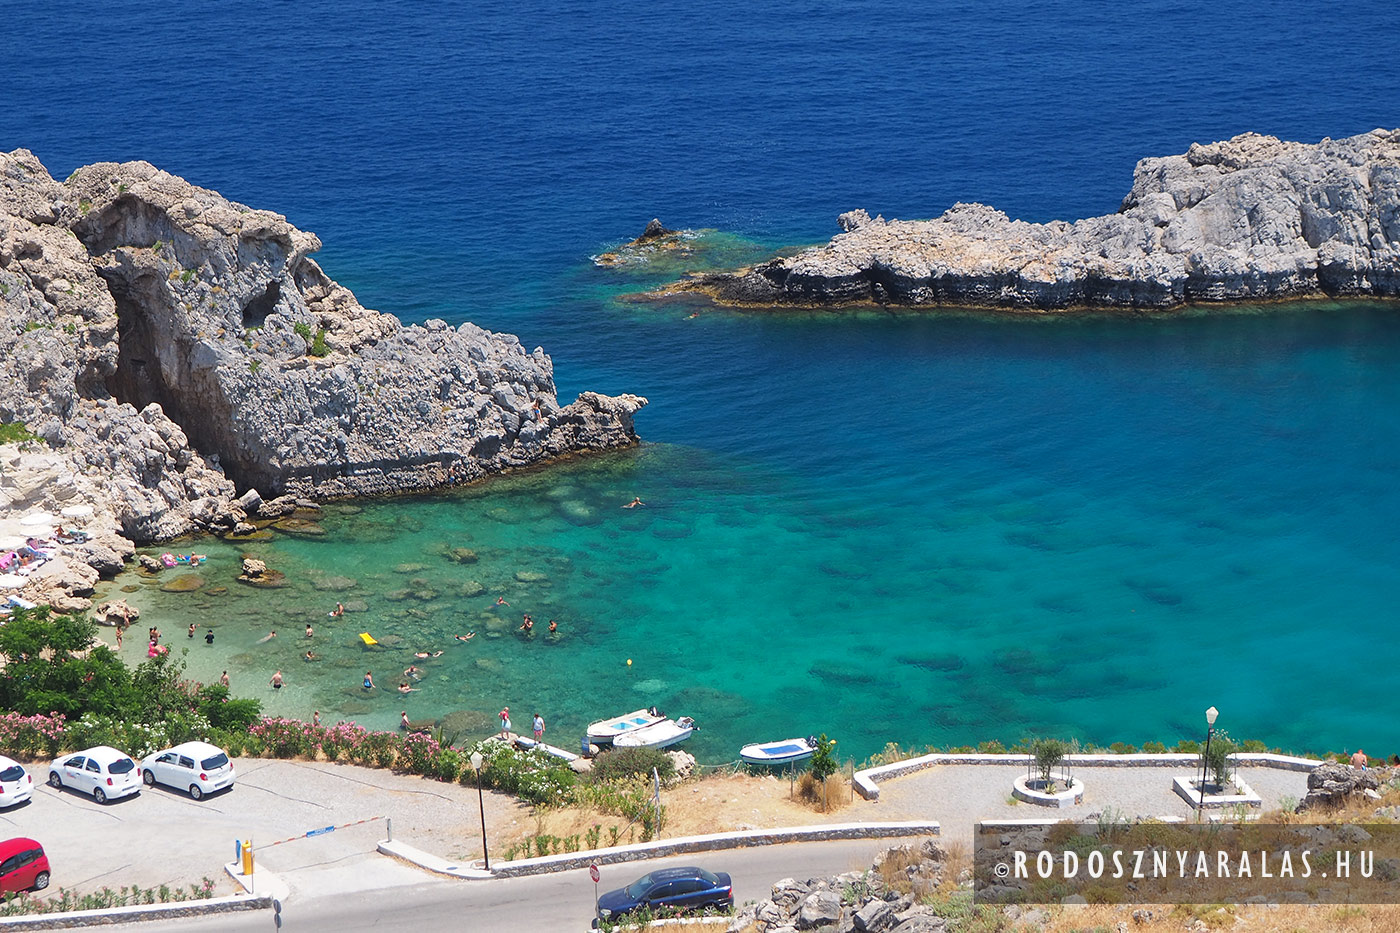 St. Paul's bay, Rodosz (Rhodes)